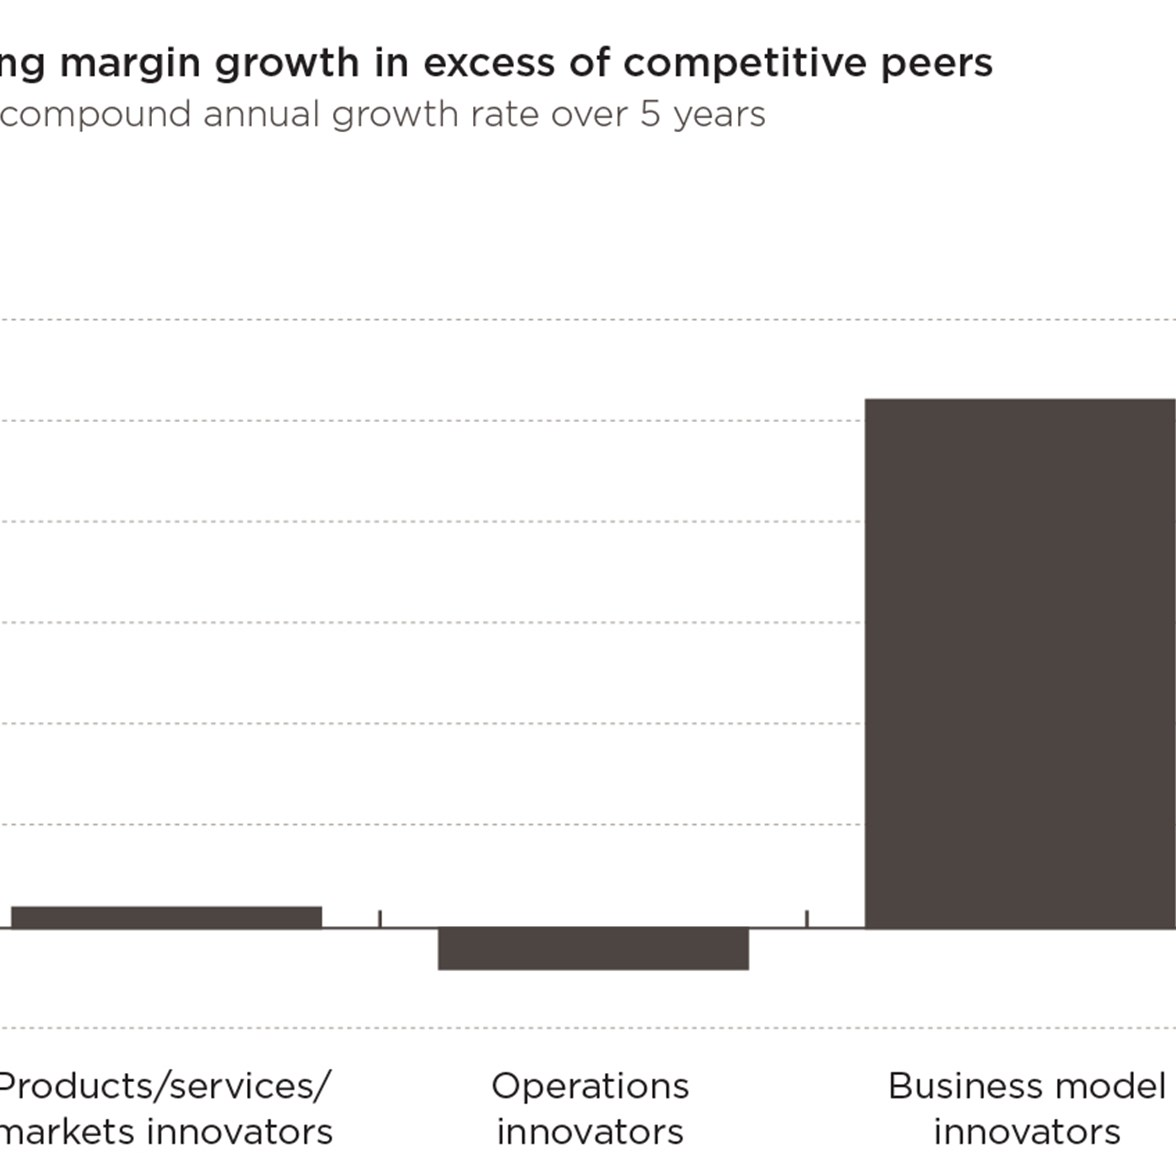 Business model innovation outperforms other types of innovation